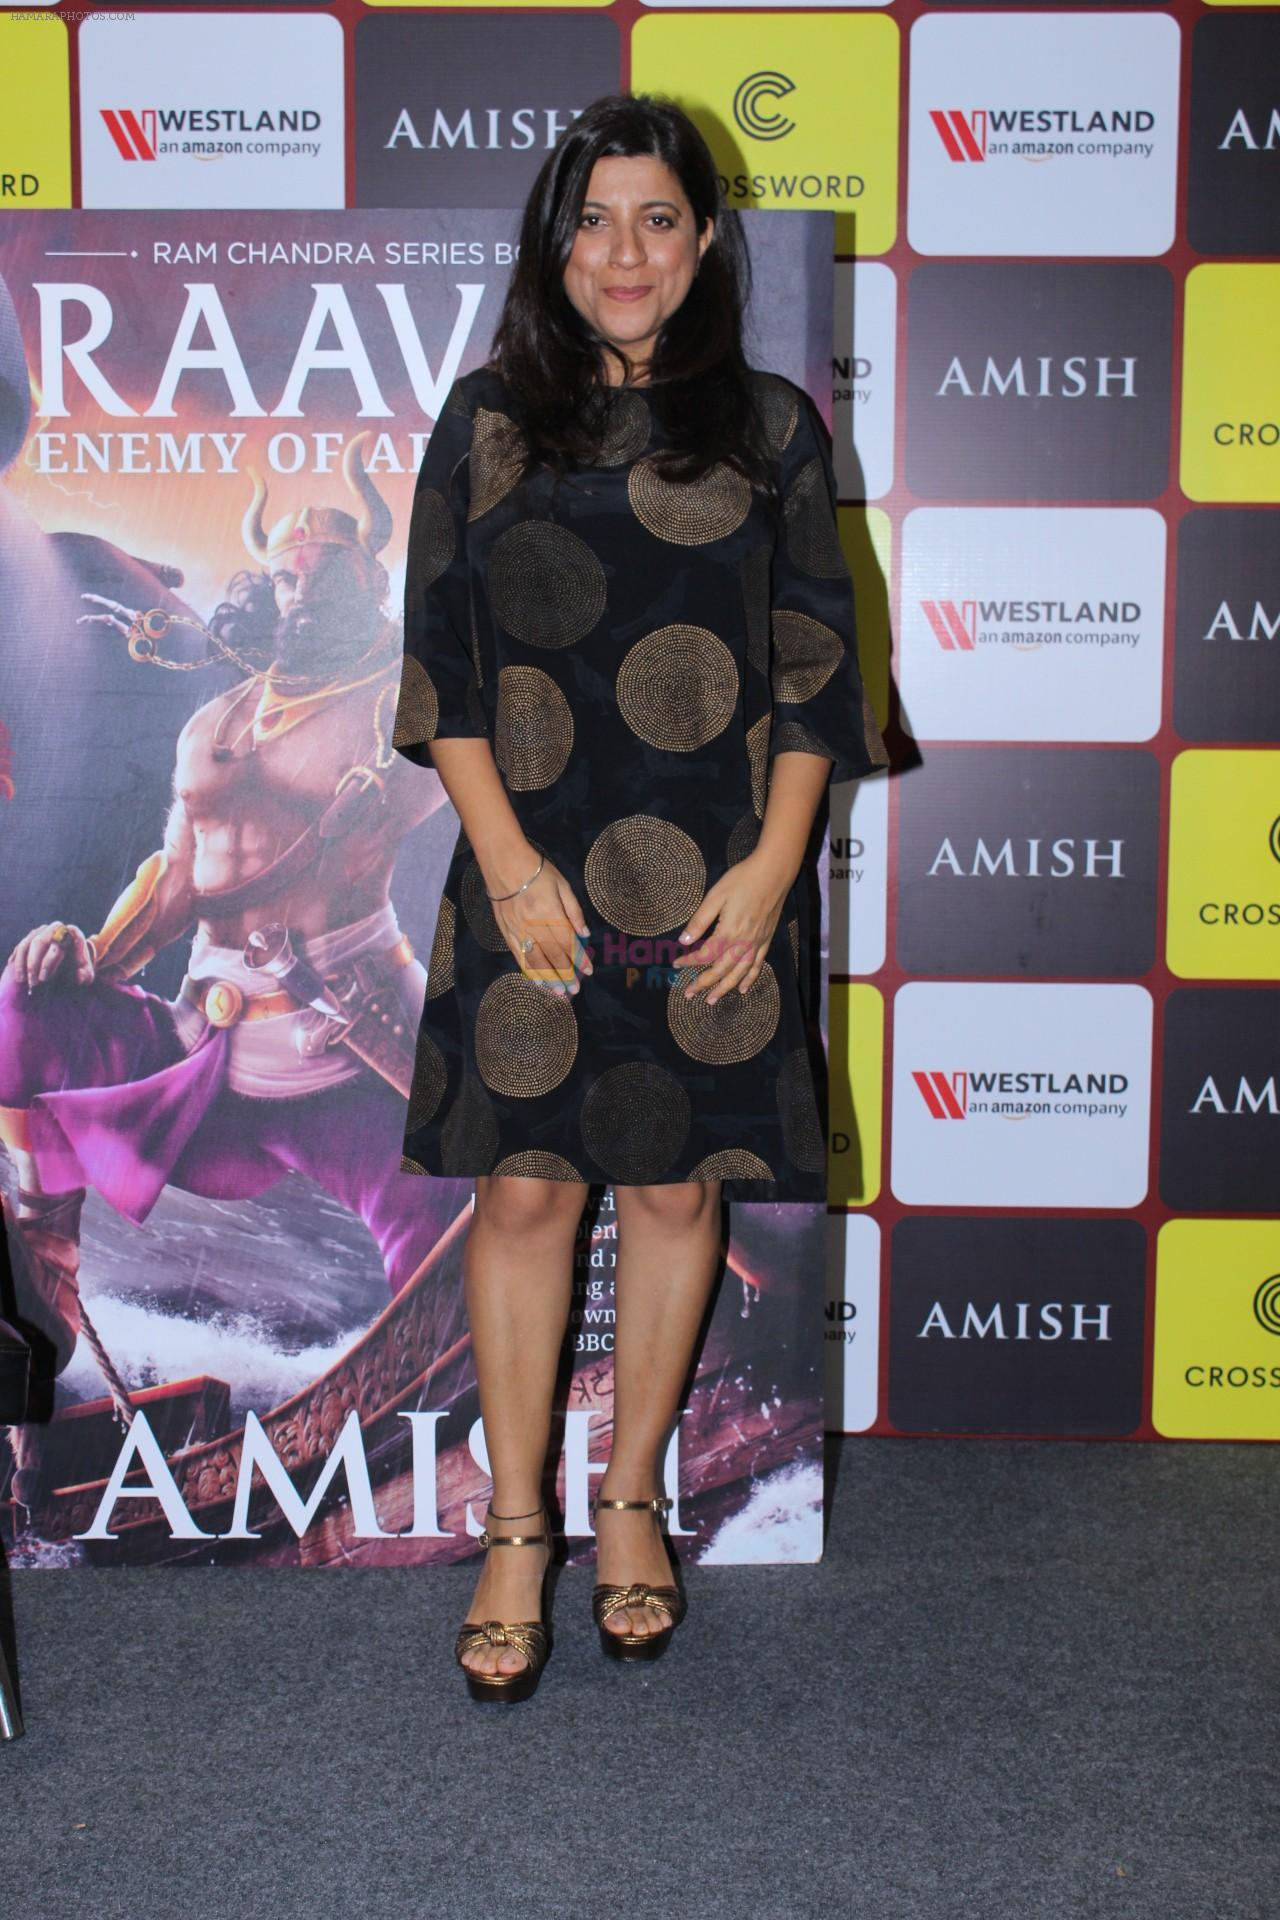 Zoya Akhtar Unveil The Book Of Author Amish Tripathi Raavan Enemy Of Aryavarta on 3rd June 2019